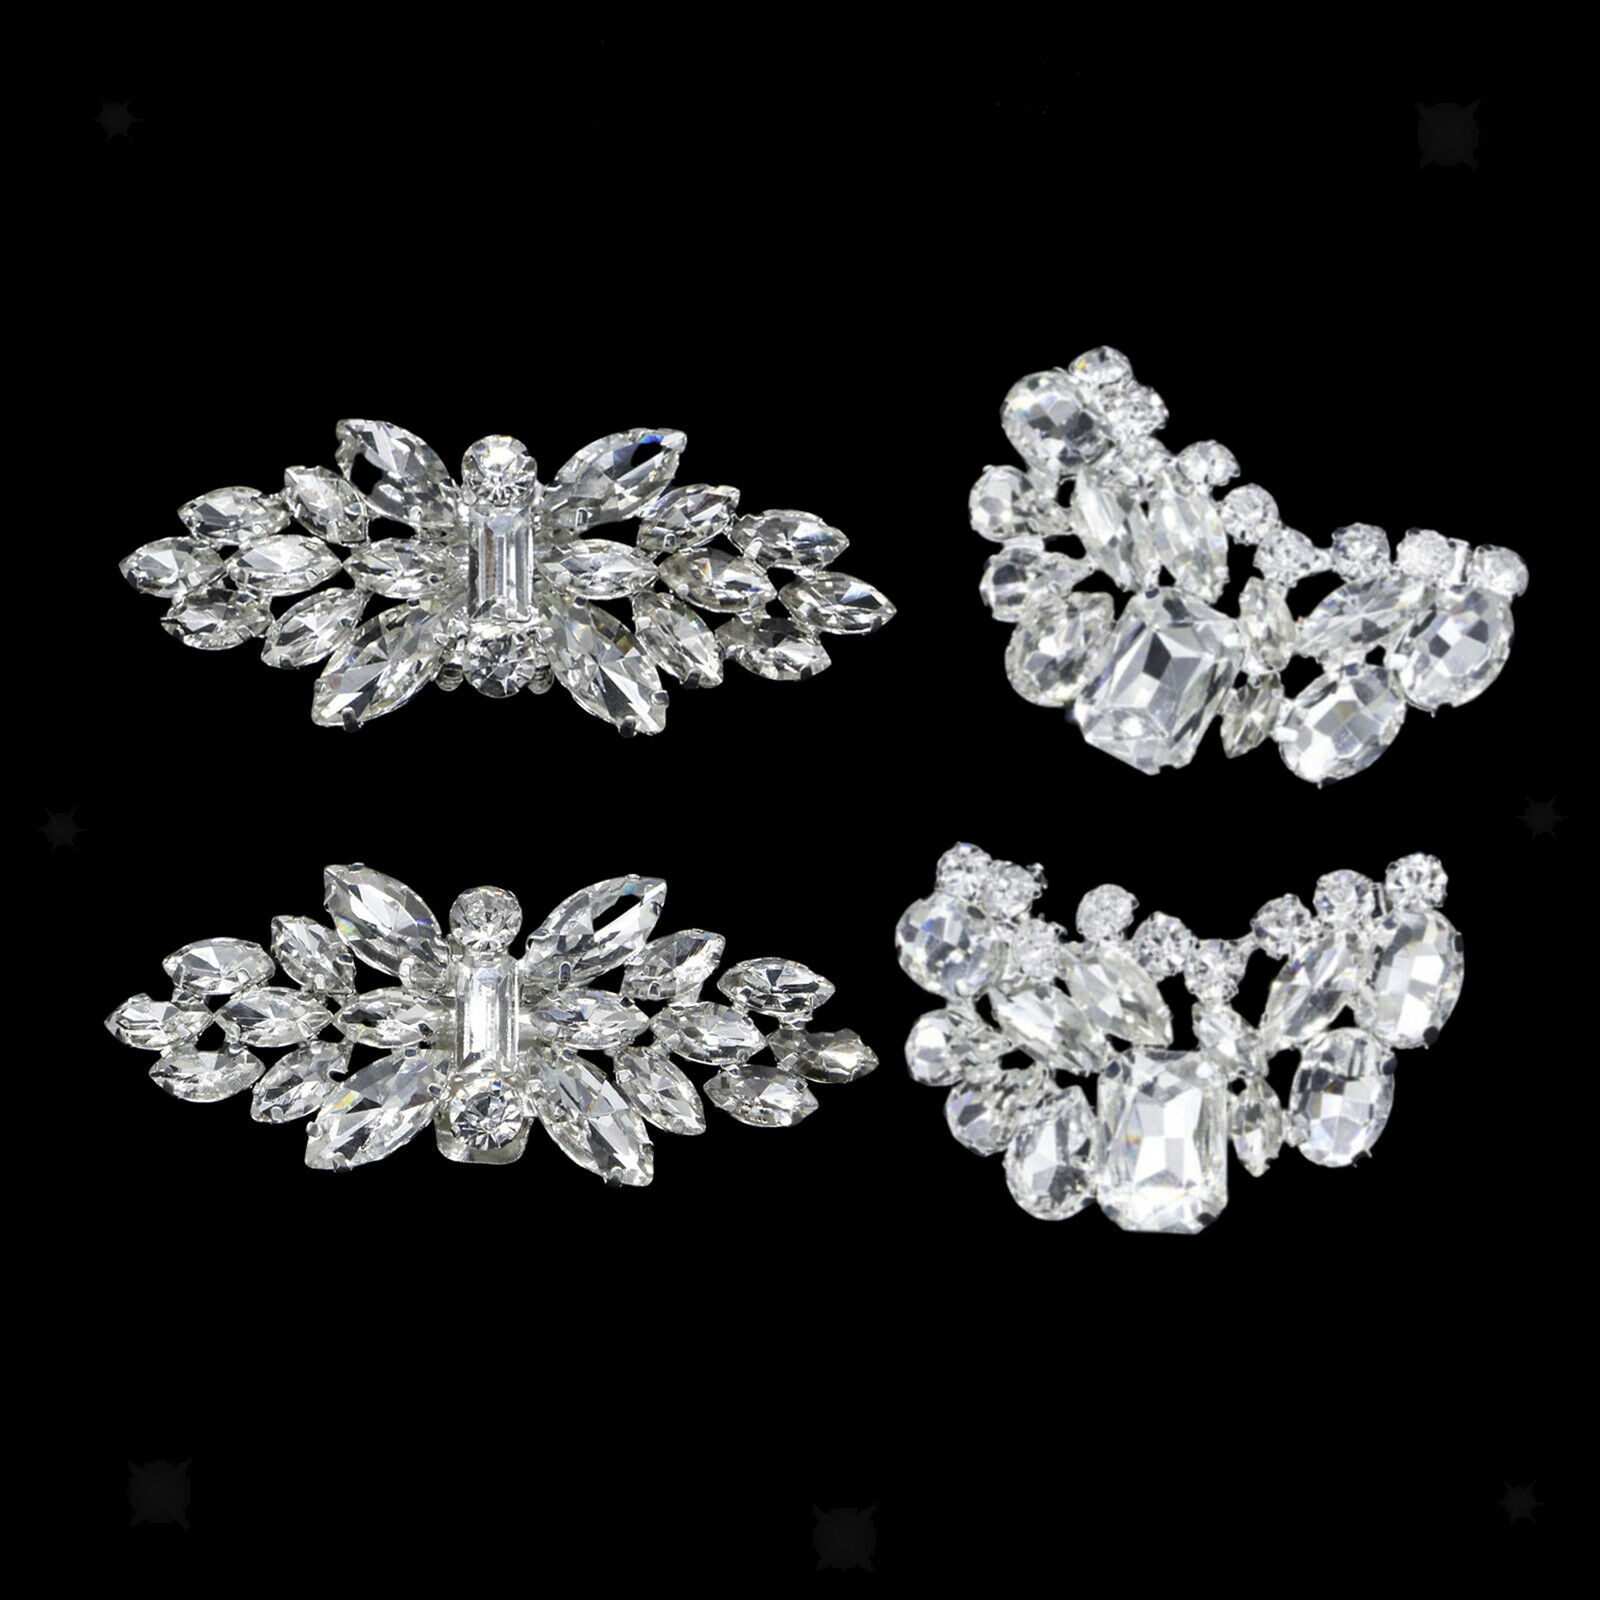 Rhinestone Shoe Clips Lady Removable DIY Bridal Prom Shoe Buckle Charms